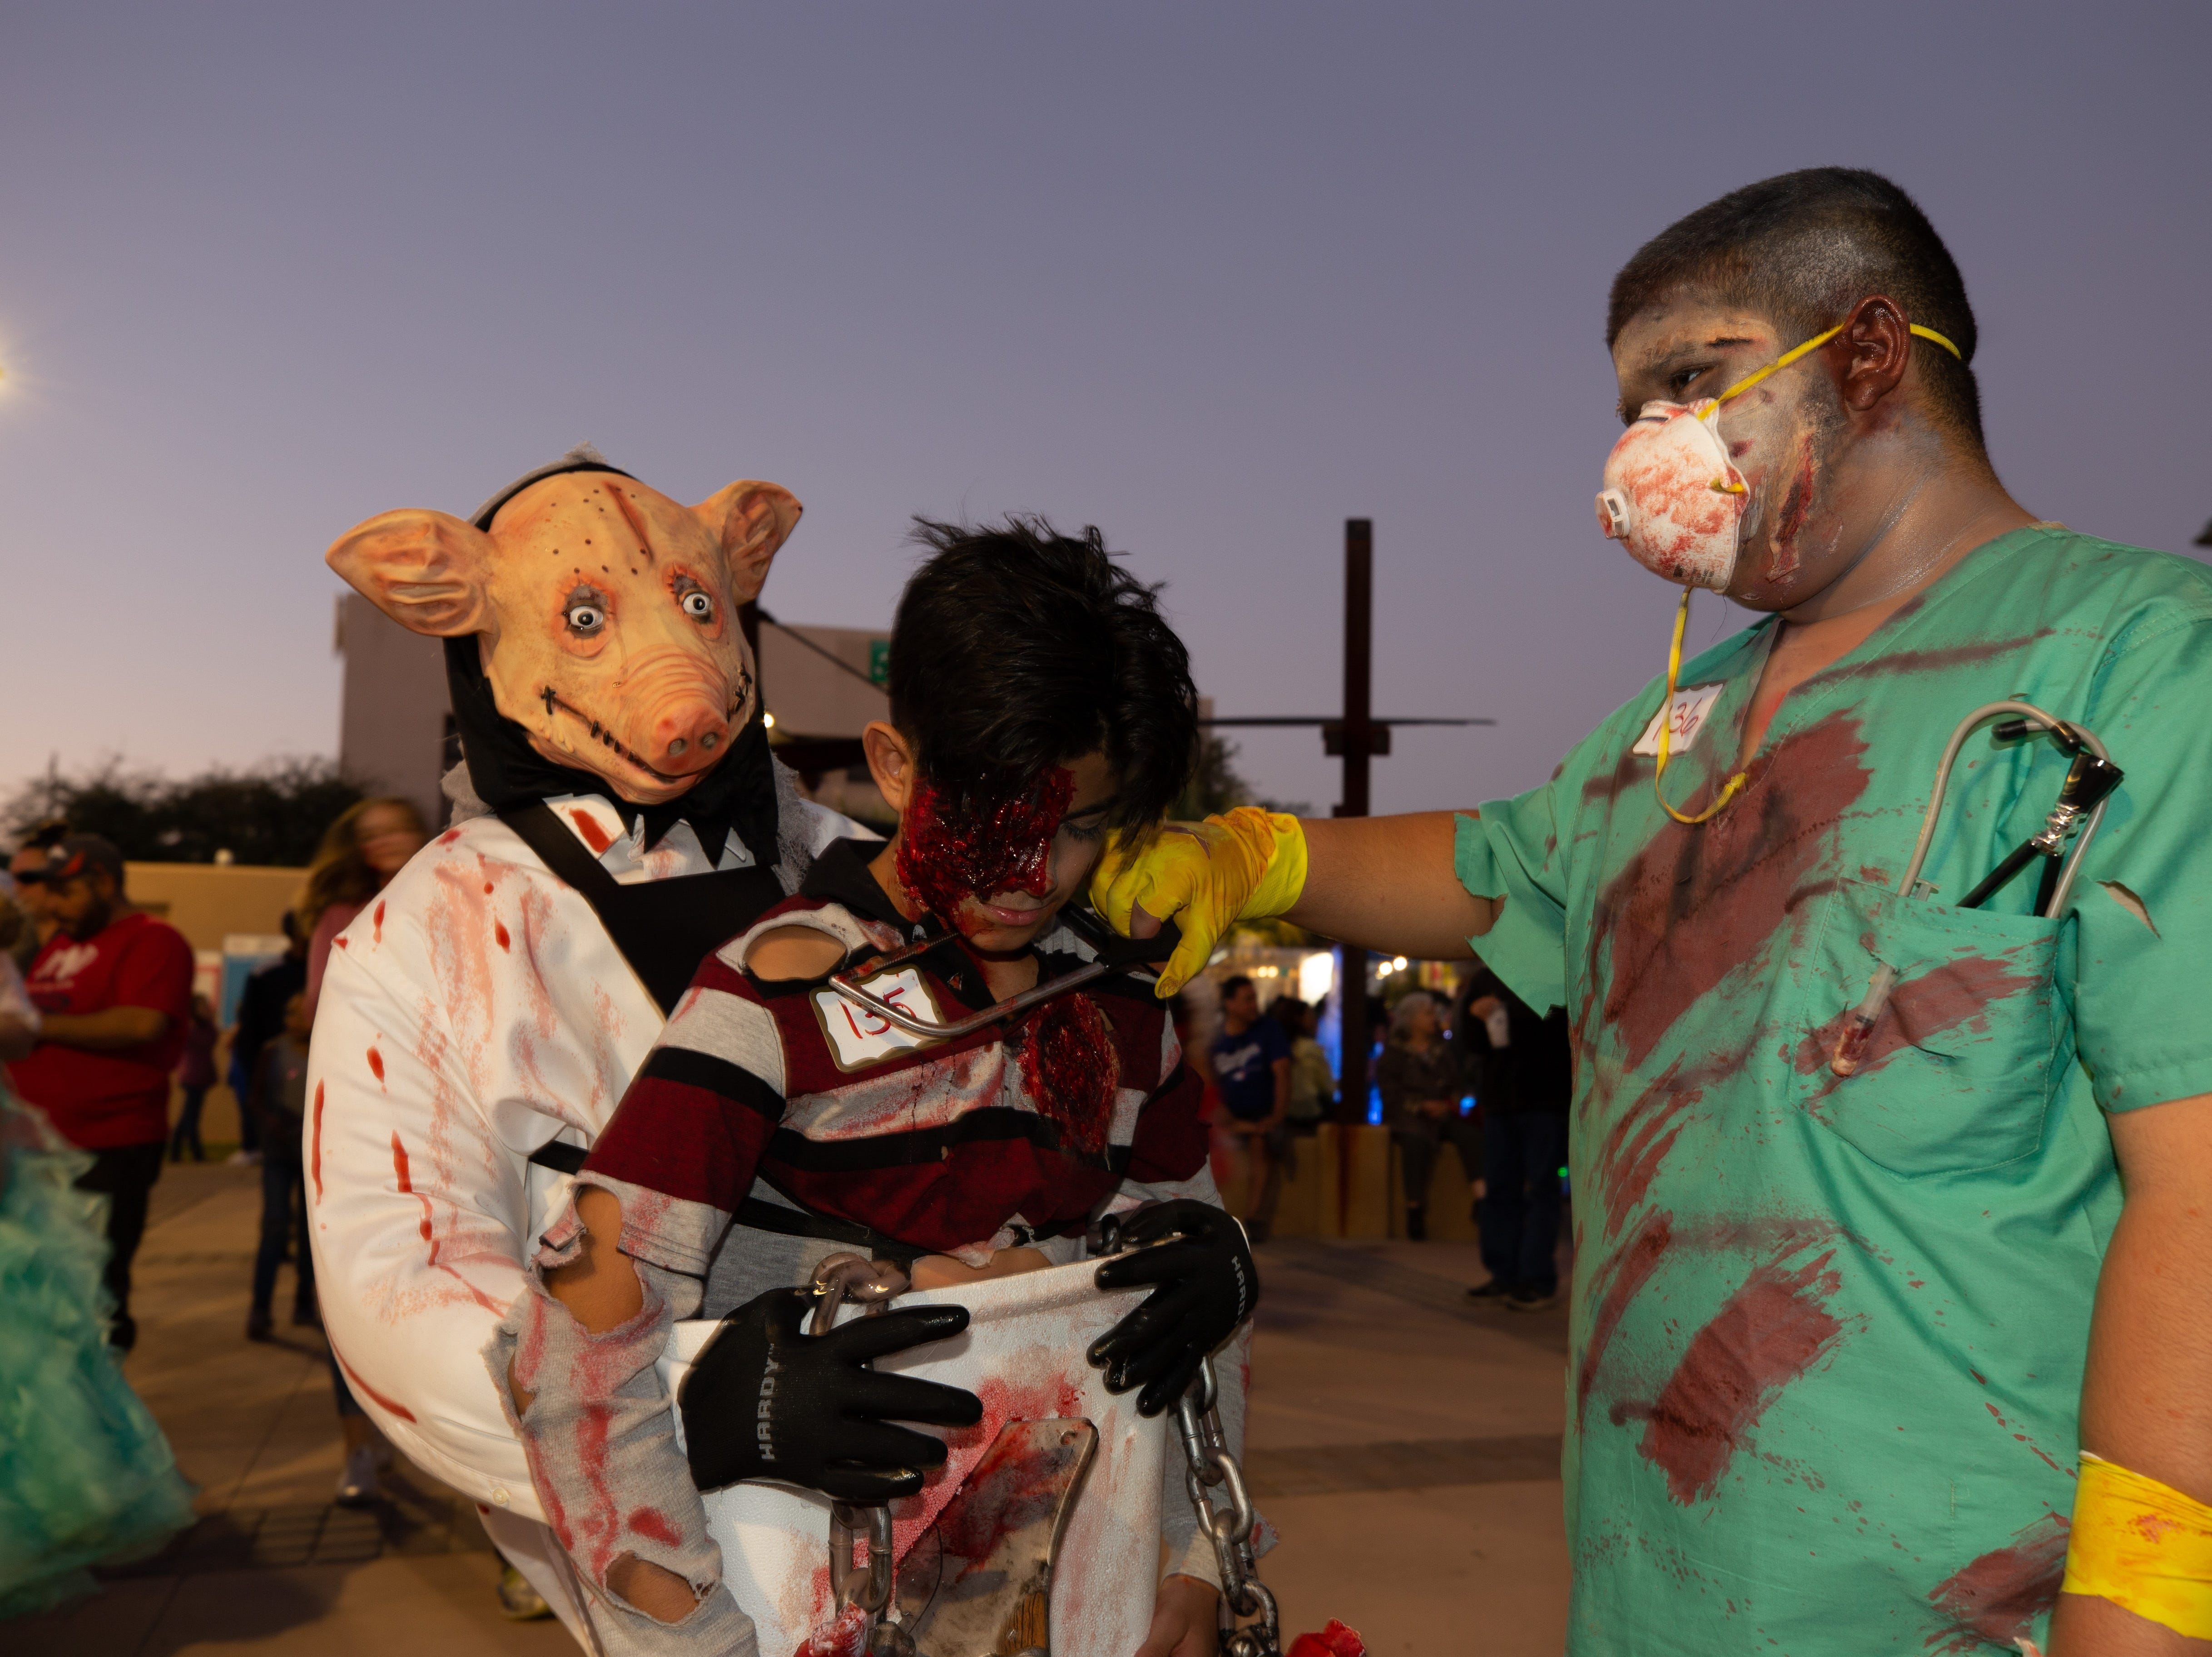 Doctor Death gets ready to take another victim during the Zombie Walk. Pictured left to right is the Creepy Pig Zavier Udero, 12; and Josiah Bazan, 13. The 2018 Zombie Walk held on Saturday, Oct. 27, 2018.